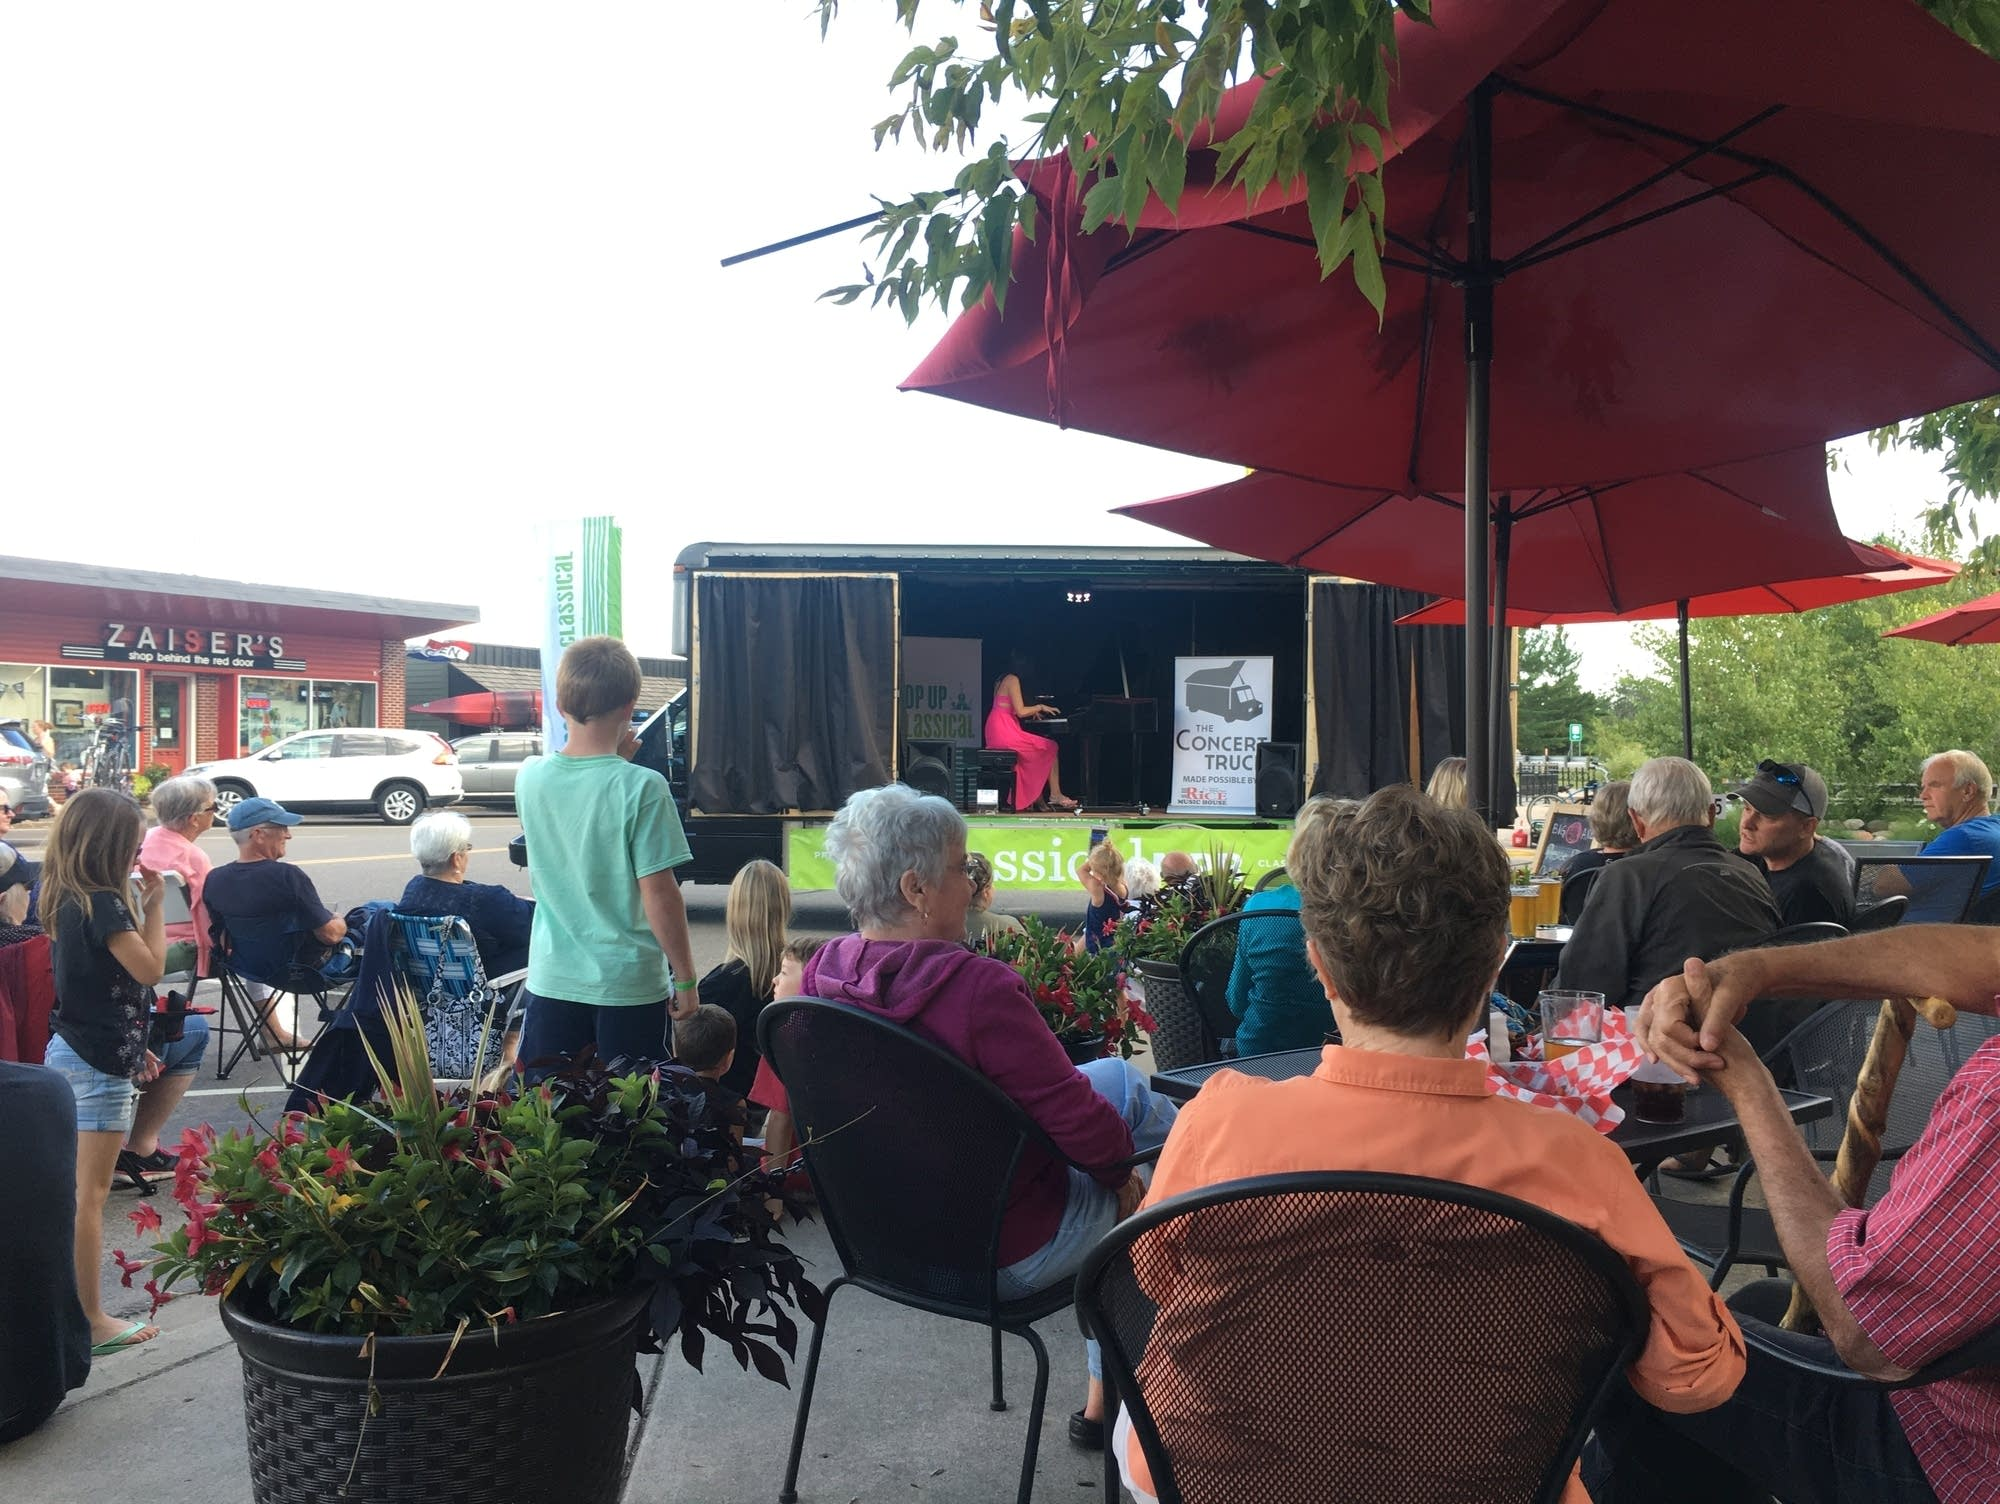 Pop Up Classical: The Concert Truck 2017 - Nisswa